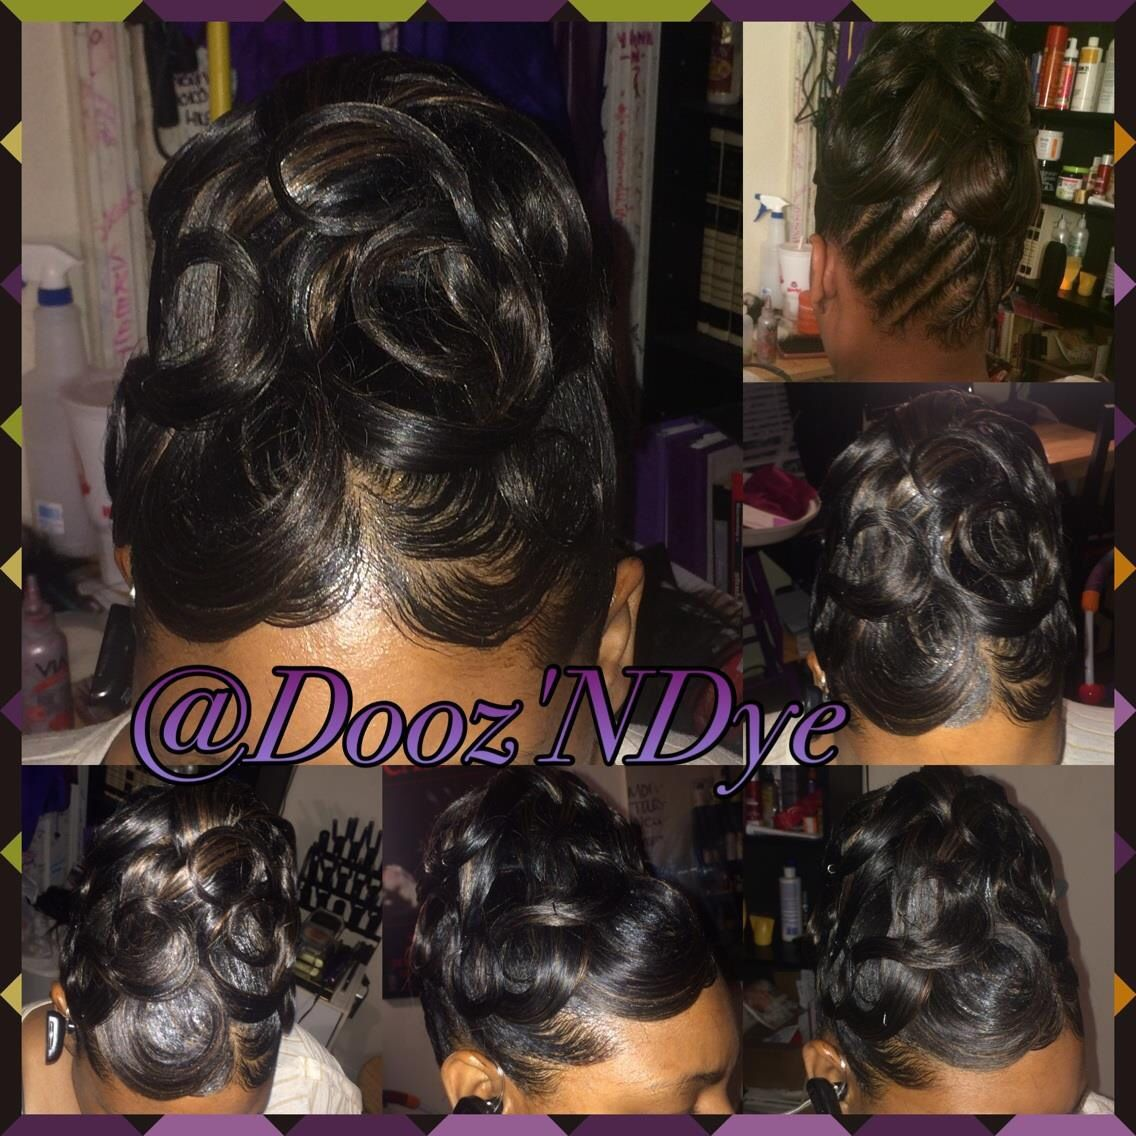 Black hairstyles hairstyles for black women UpDo protective